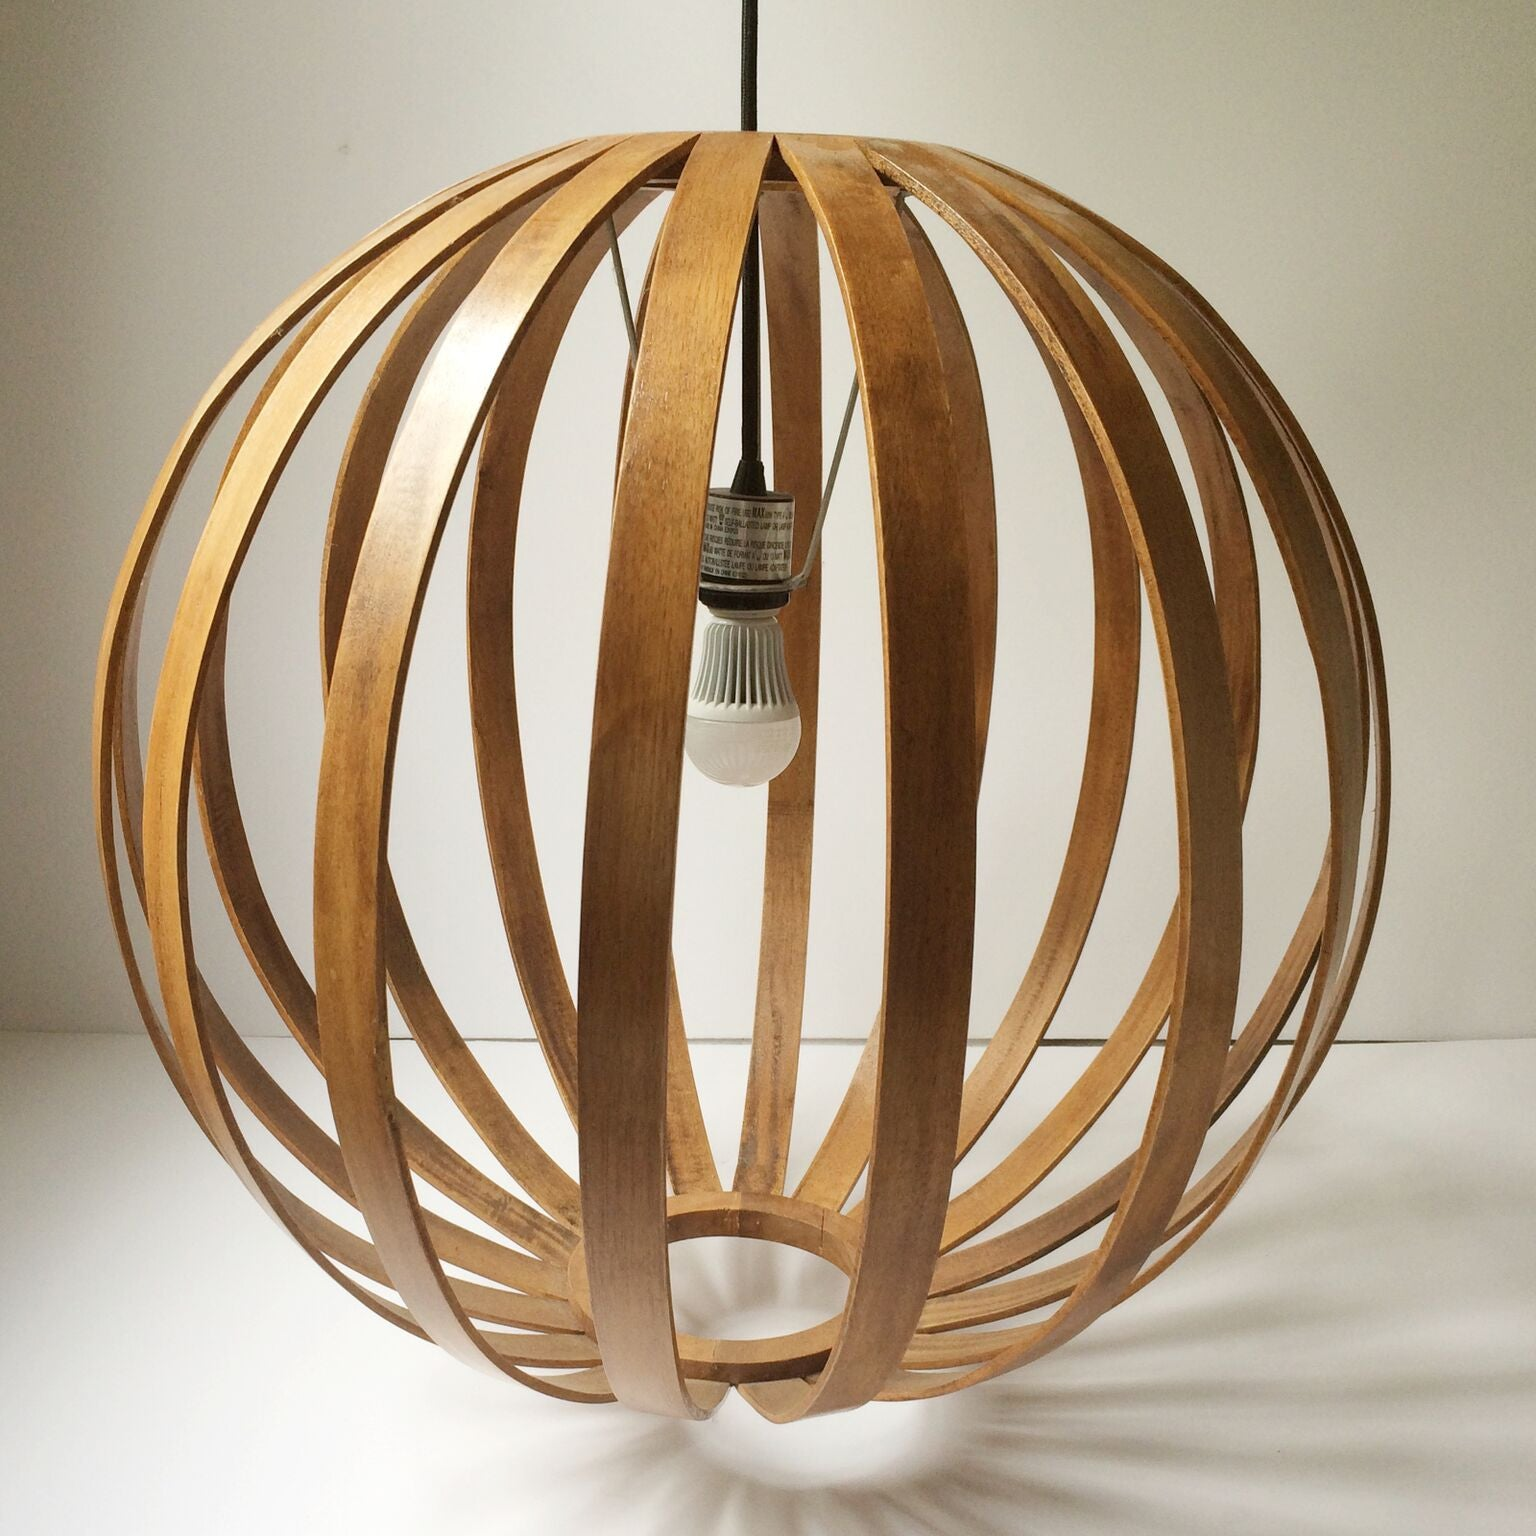 West Elm Bentwood Pendant Lamp, Round – Gather Goods Co.